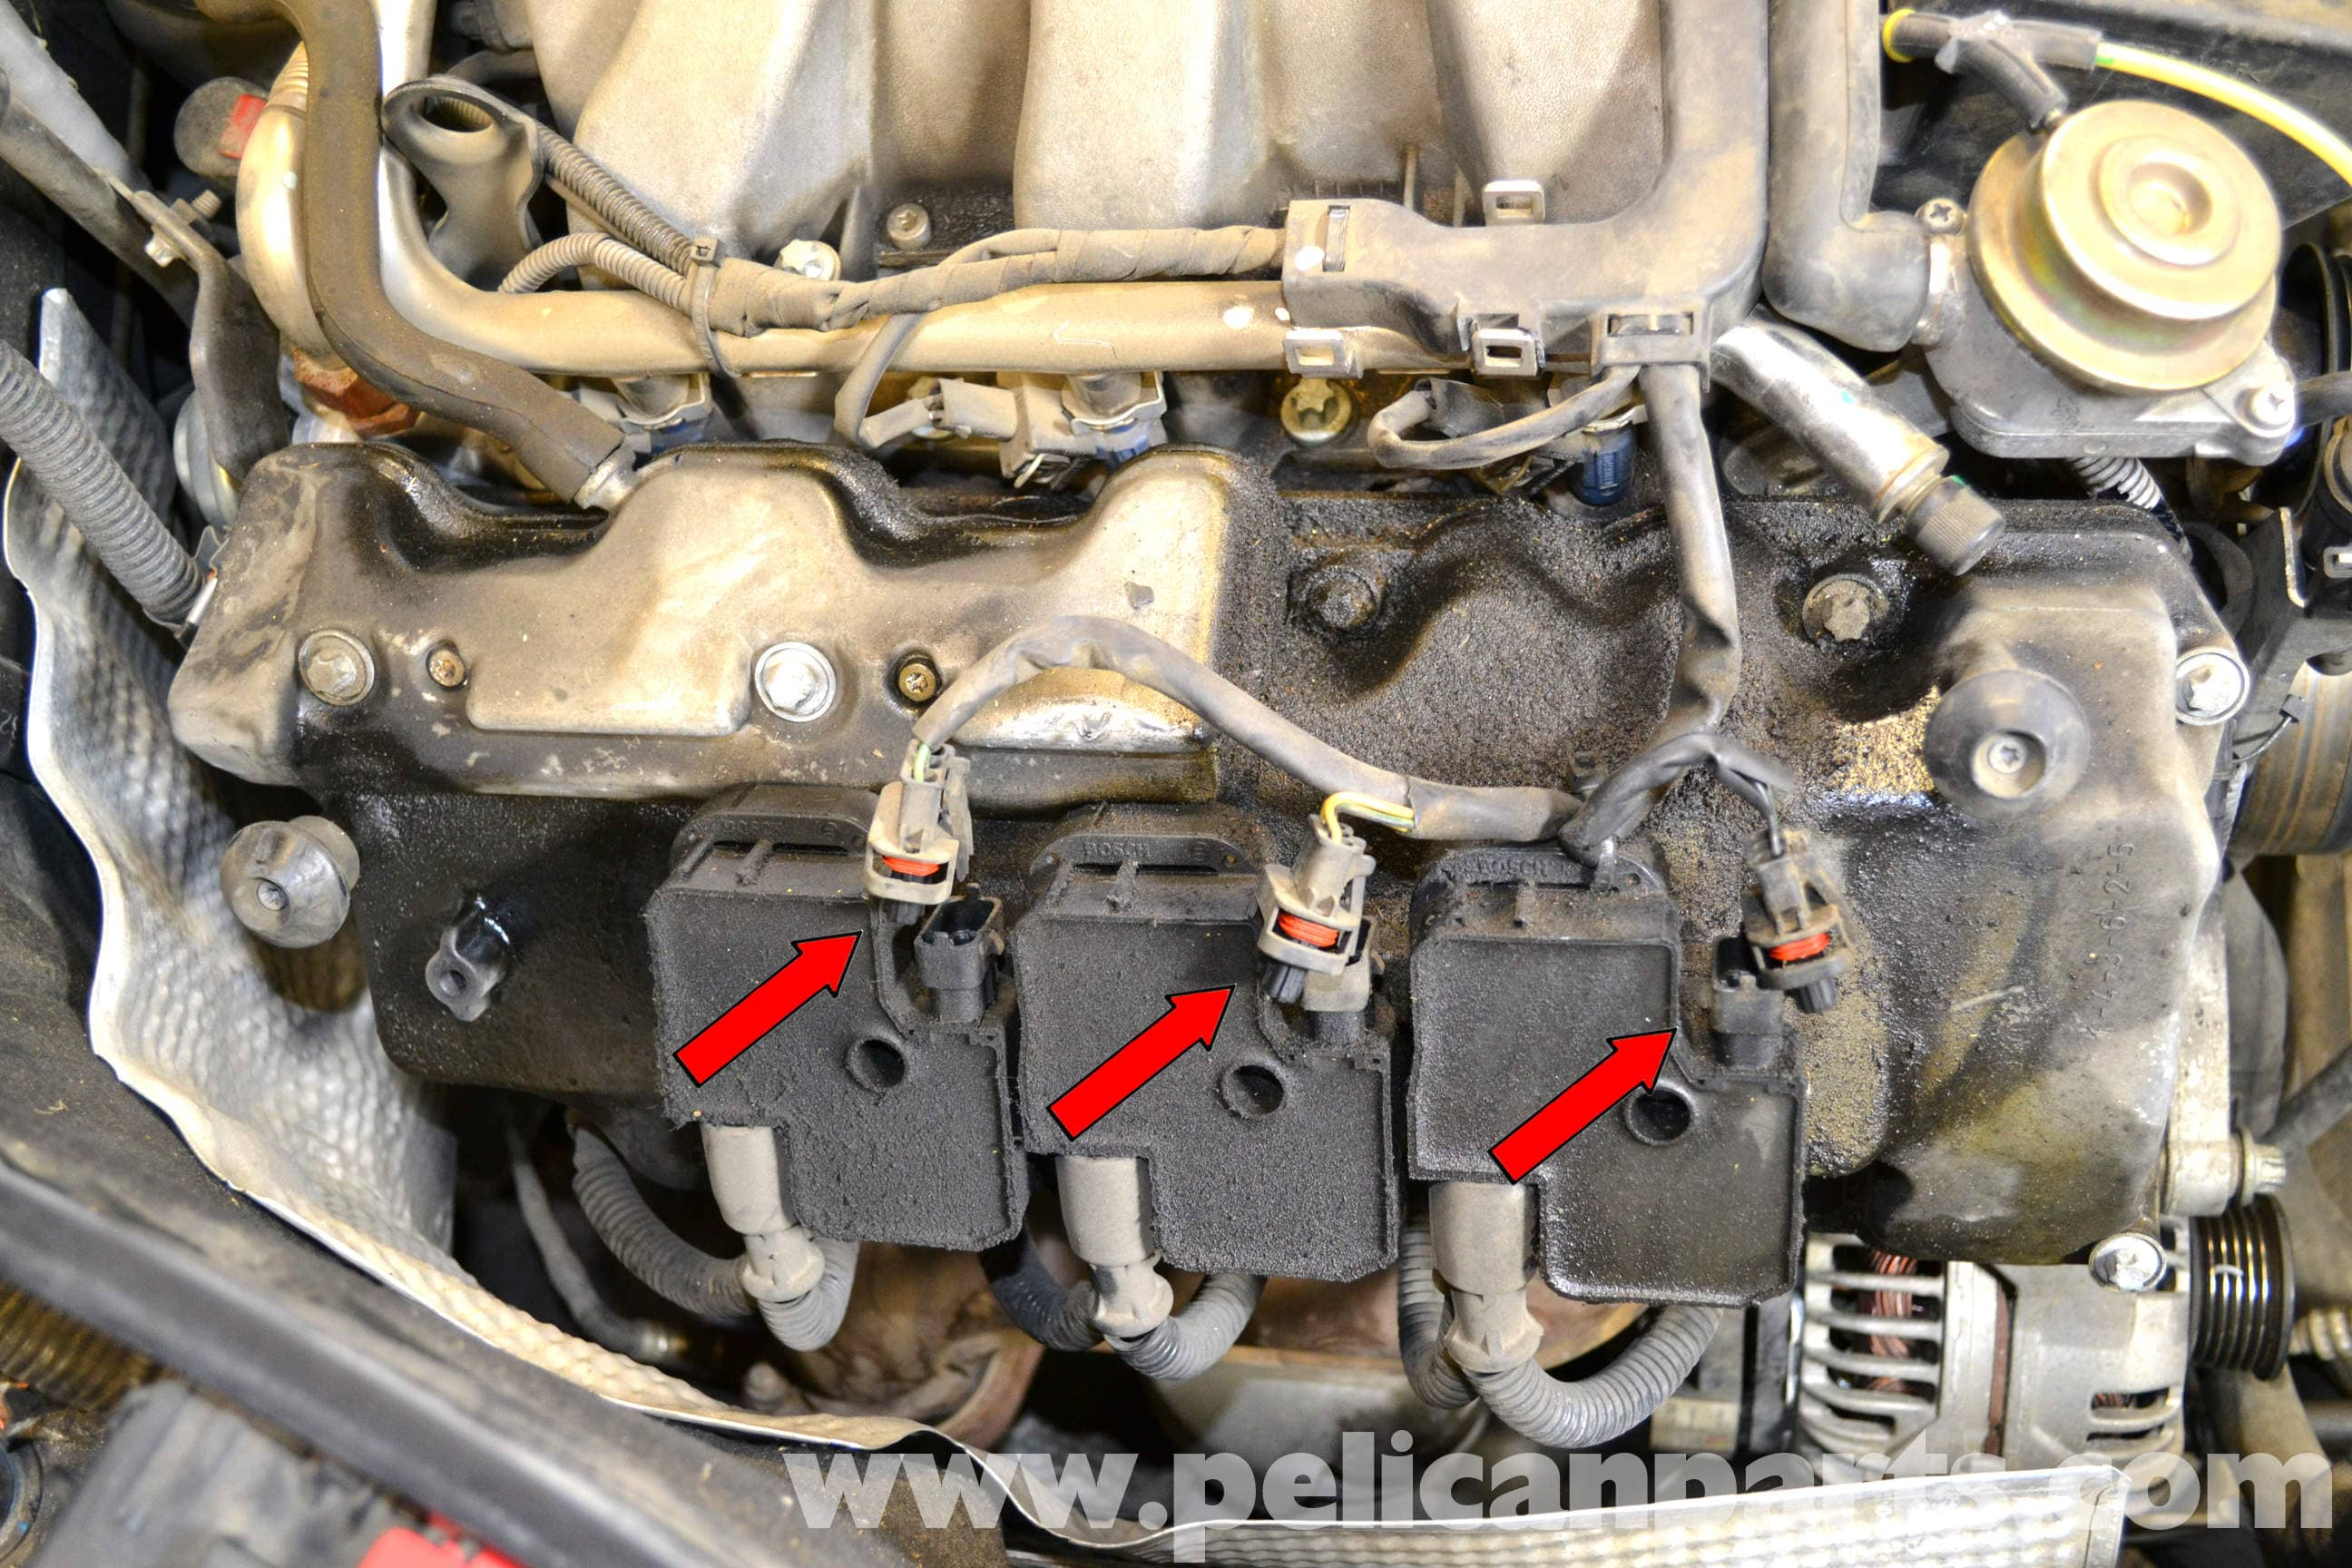 Mercedes-Benz W203 Spark Plug and Coil Replacement - (2001 ...